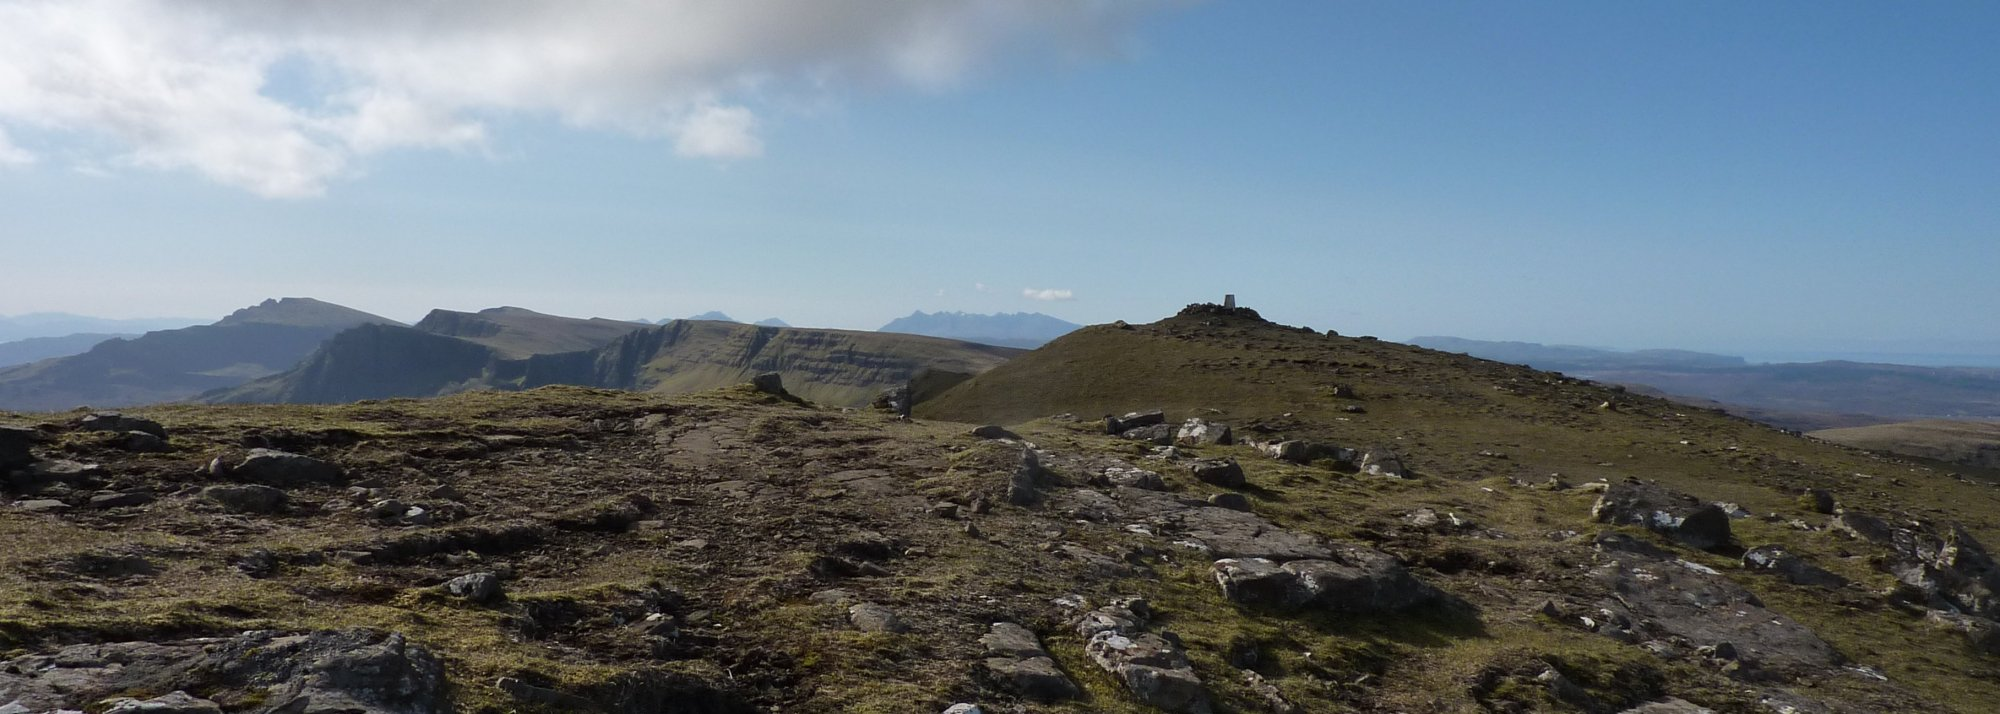 Approaching the summit of Beinn Edra